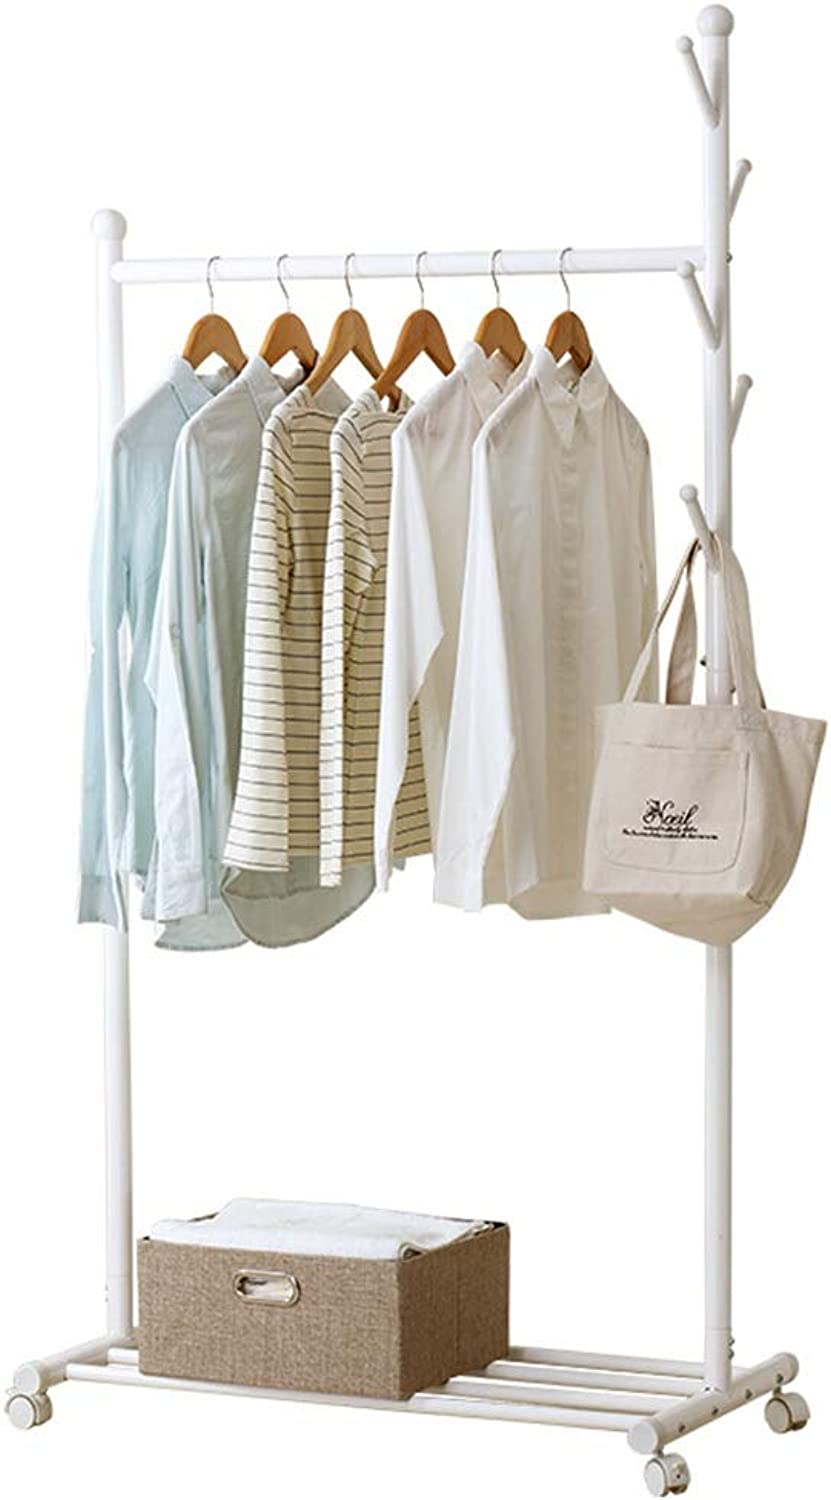 XIAOLONG Standing Coat Racks wooden free to move white Hall Trees Coat Rack Stand shoe rack Hooks Clothes Stand Tree Stylish Wooden Hat Coat Rail Stand Rack Clothes Jacket Storage Hanger Organiser -45